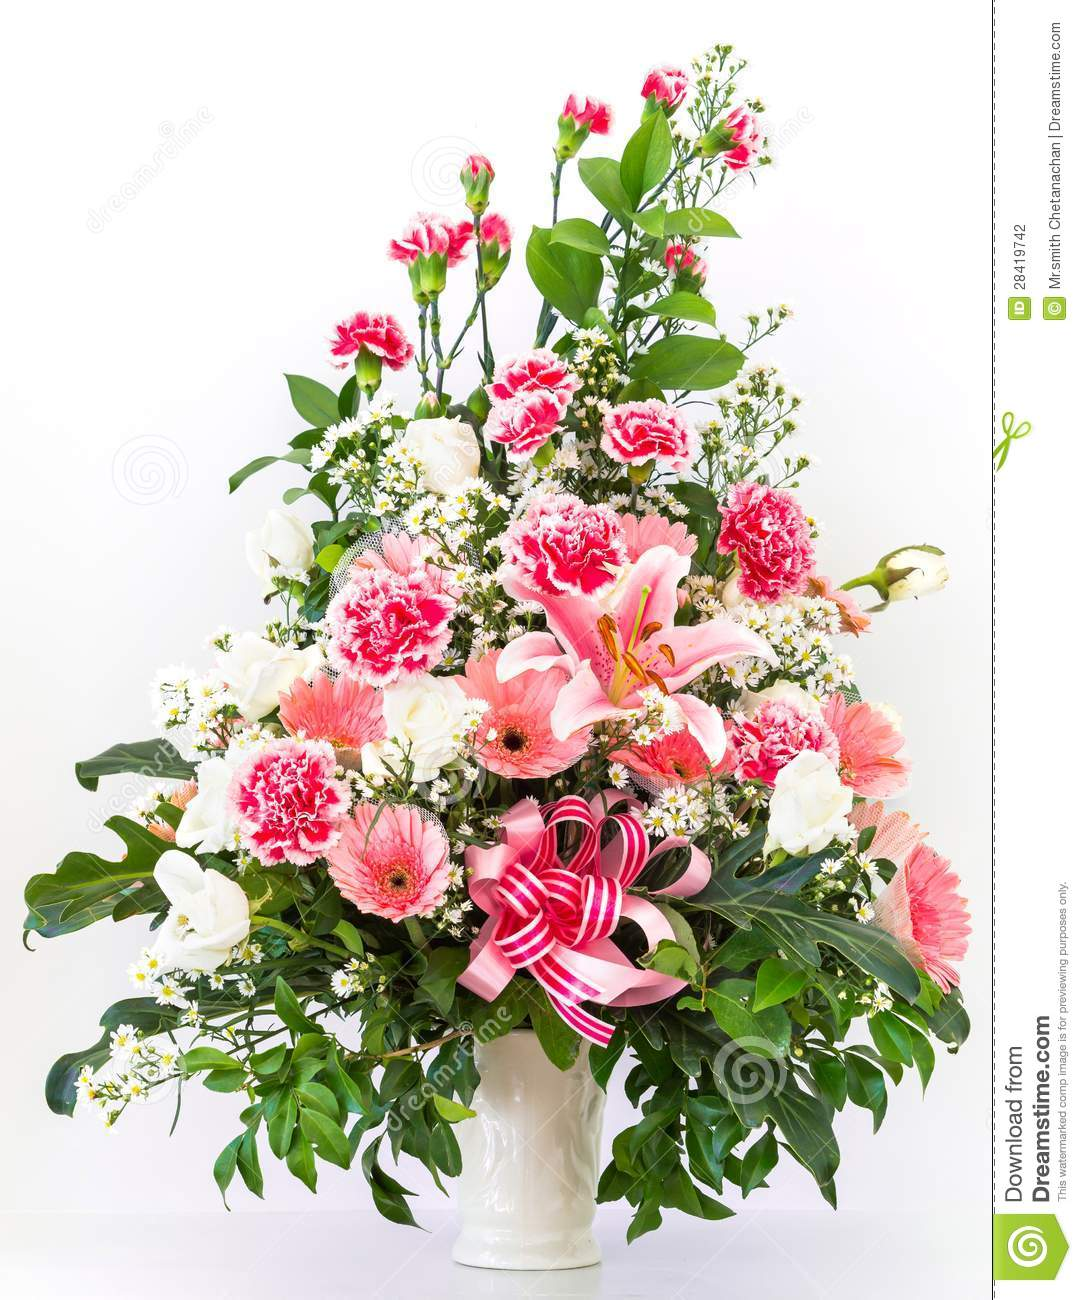 Bouquet de lis et de gerbera d 39 oeillet photo stock image for Bouquet de fleurs gerbera